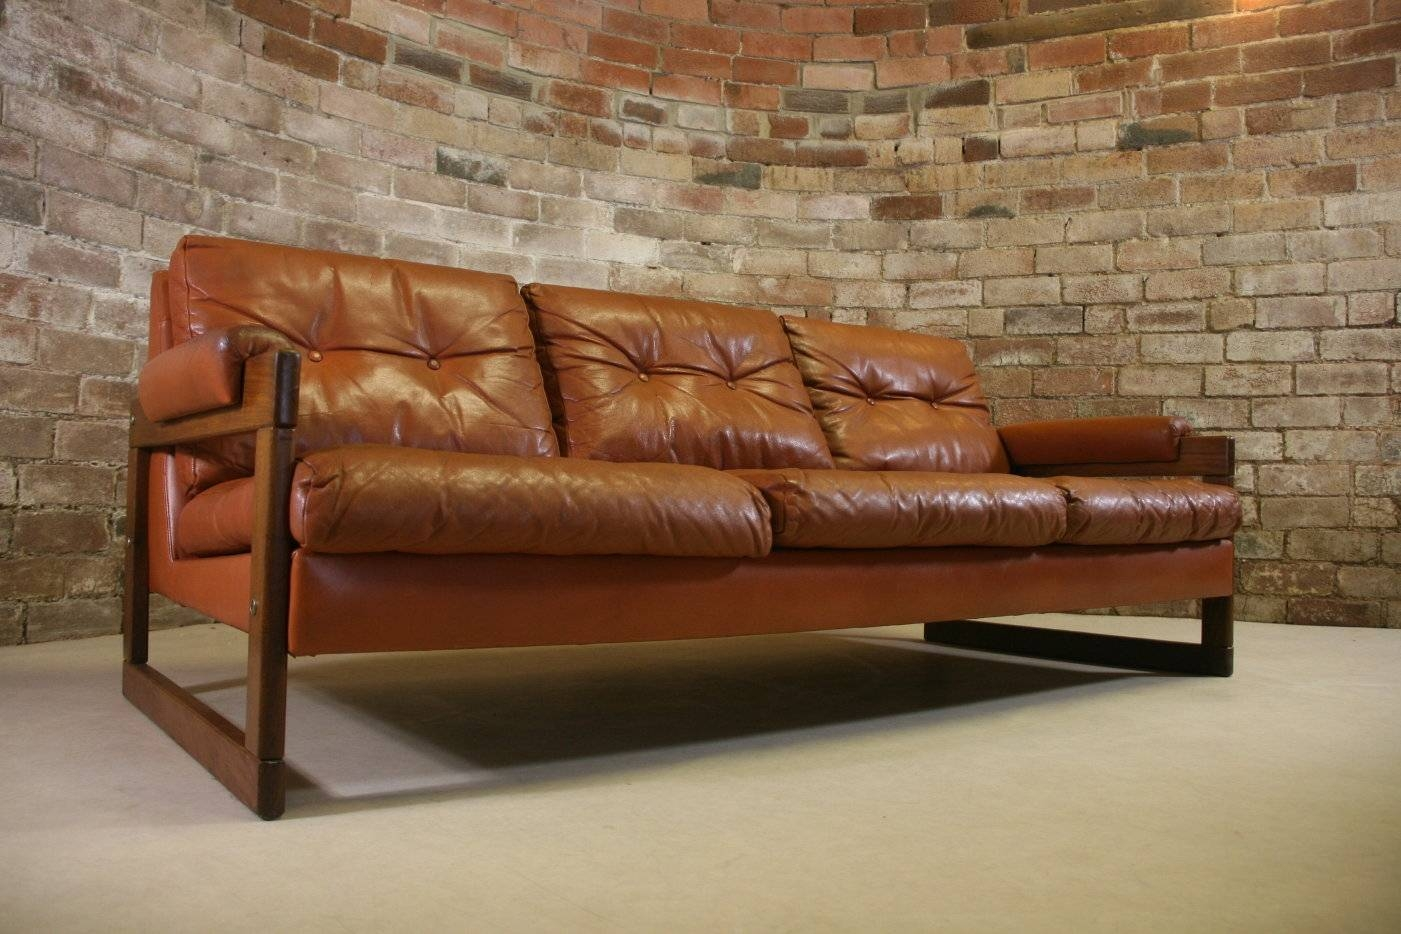 Vintage Leather Sofa Bed | Sofas Decoration with Vintage Leather Sofa Beds (Image 26 of 30)